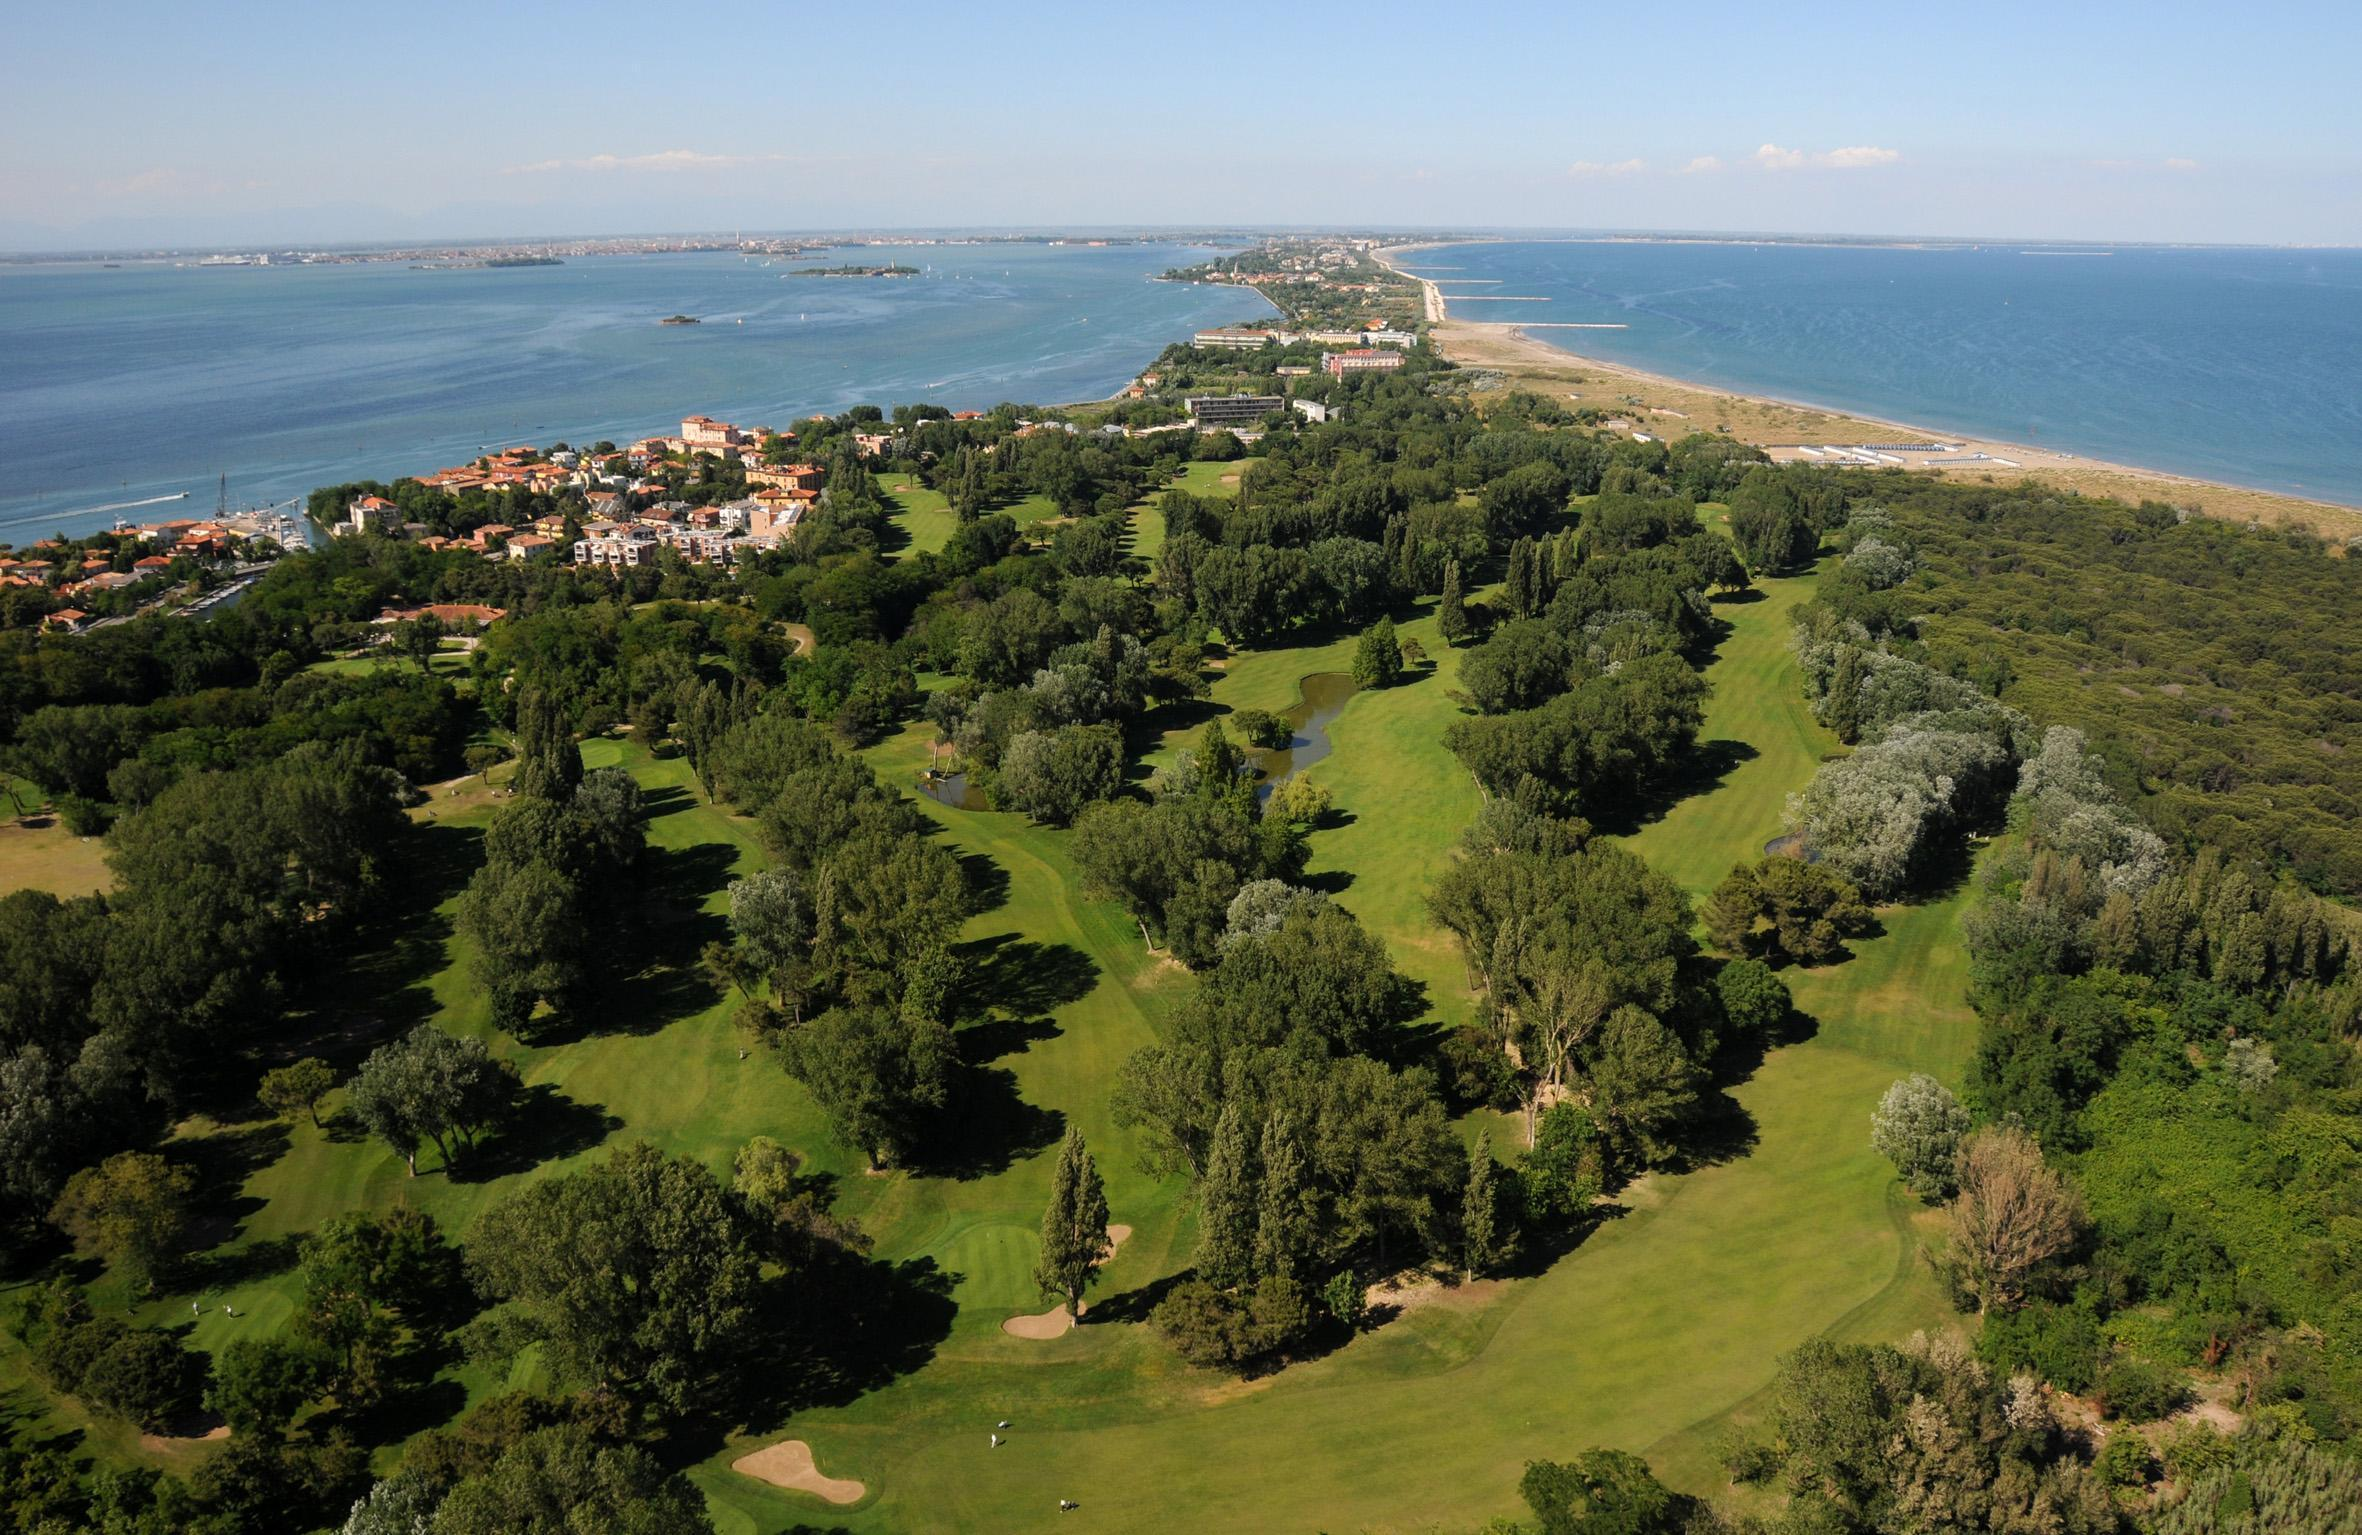 Venice Lido: The island reinventing itself as a sustainable tourist destination